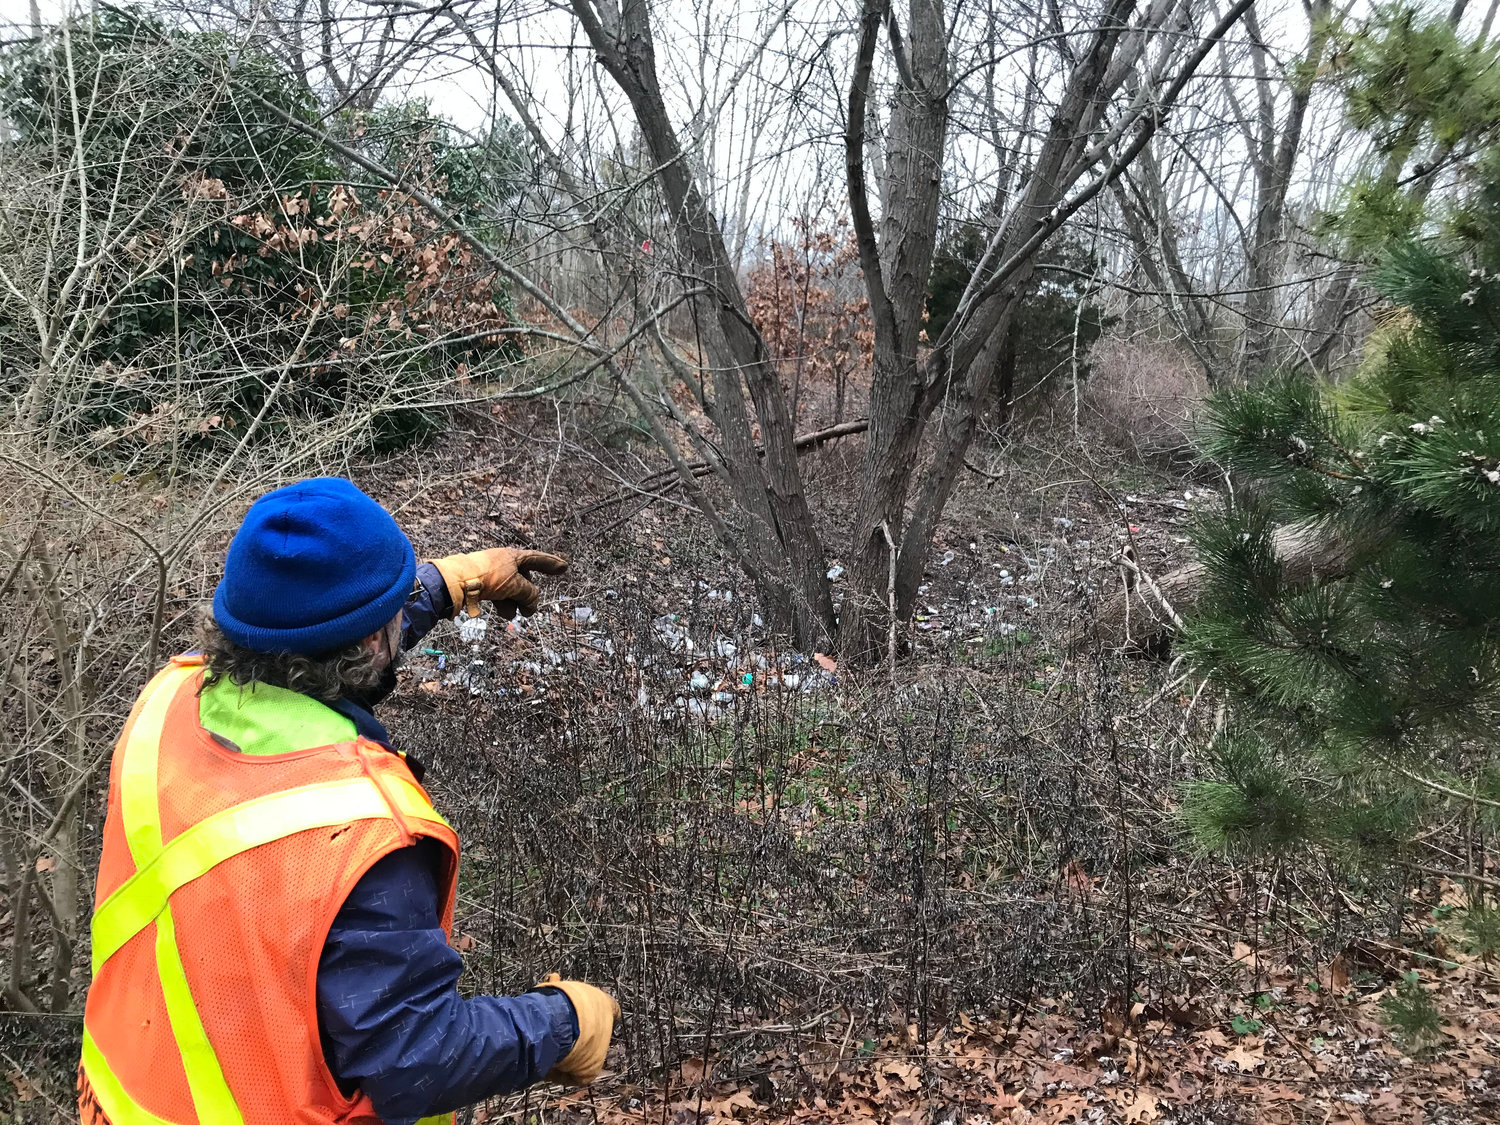 Longtime Keep Islip Clean volunteer William Raftery, of East Islip, said he discovered the litter accumulation roughly two years ago. He estimates there's over 10 years' worth of litter in the area.